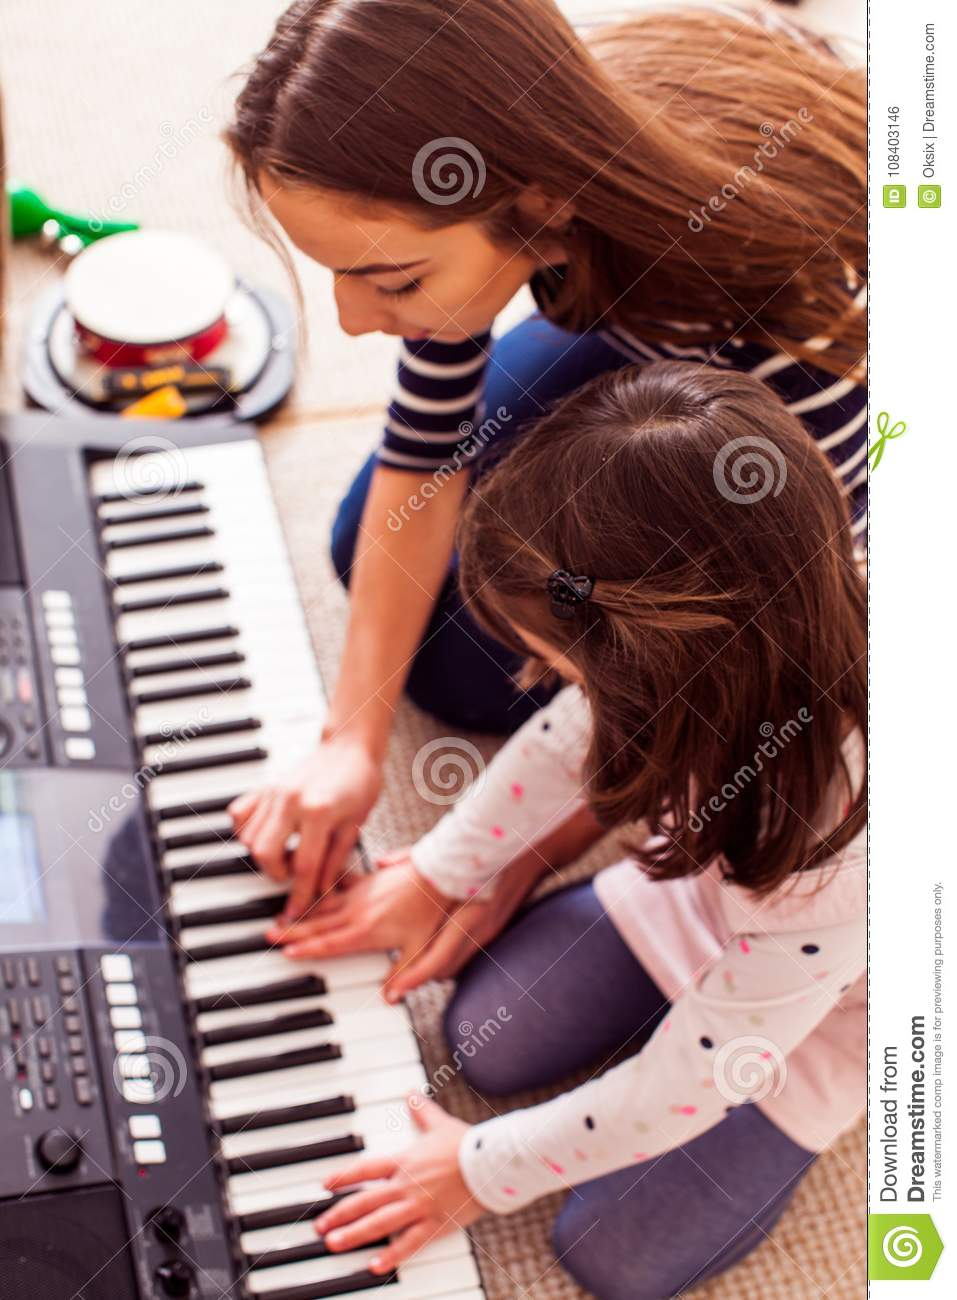 Music making lesson stock photo  Image of background - 108403146